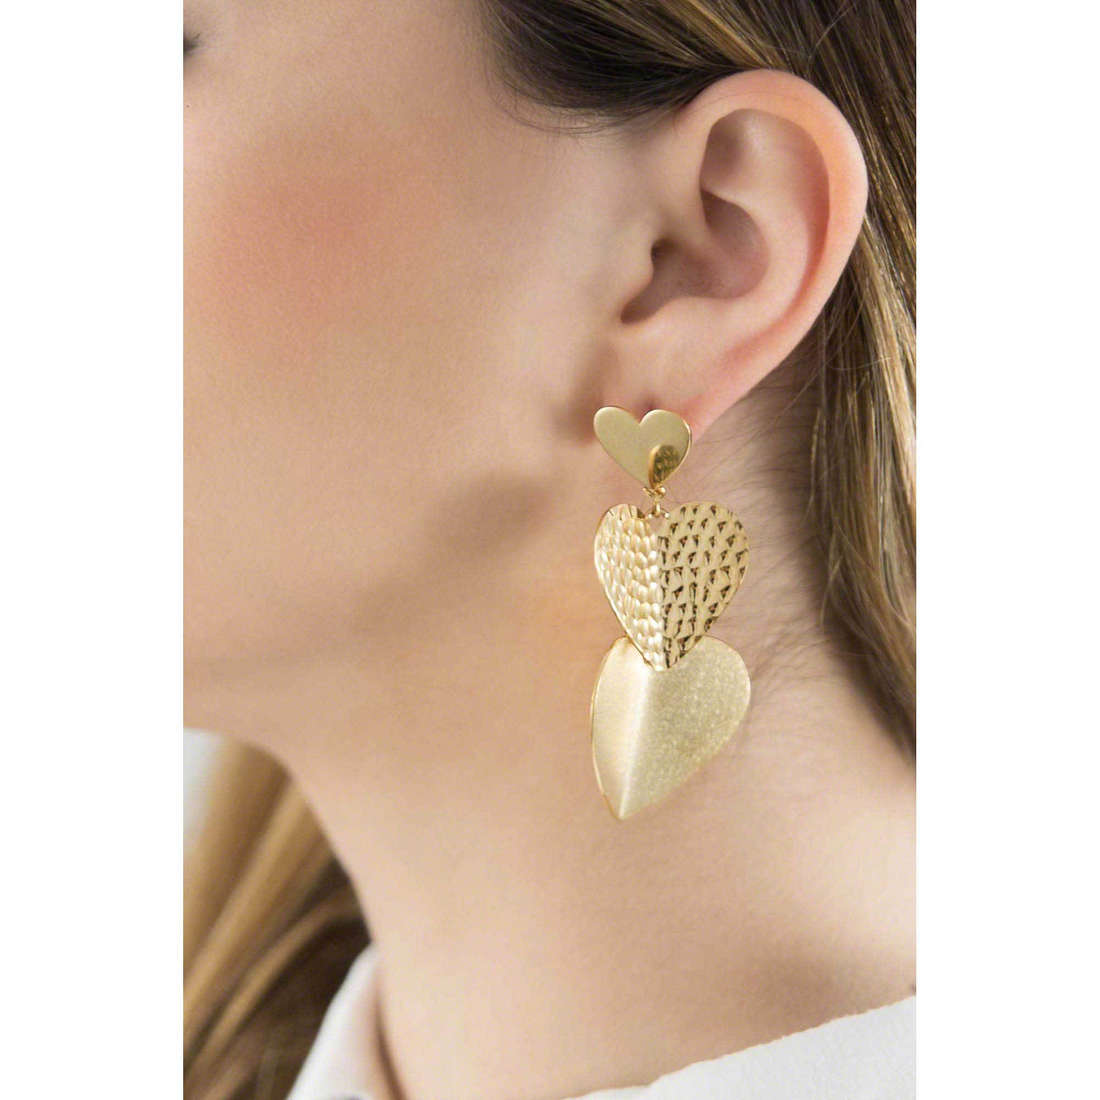 Brosway boucles d'oreille Heart Beat femme BHB21 indosso